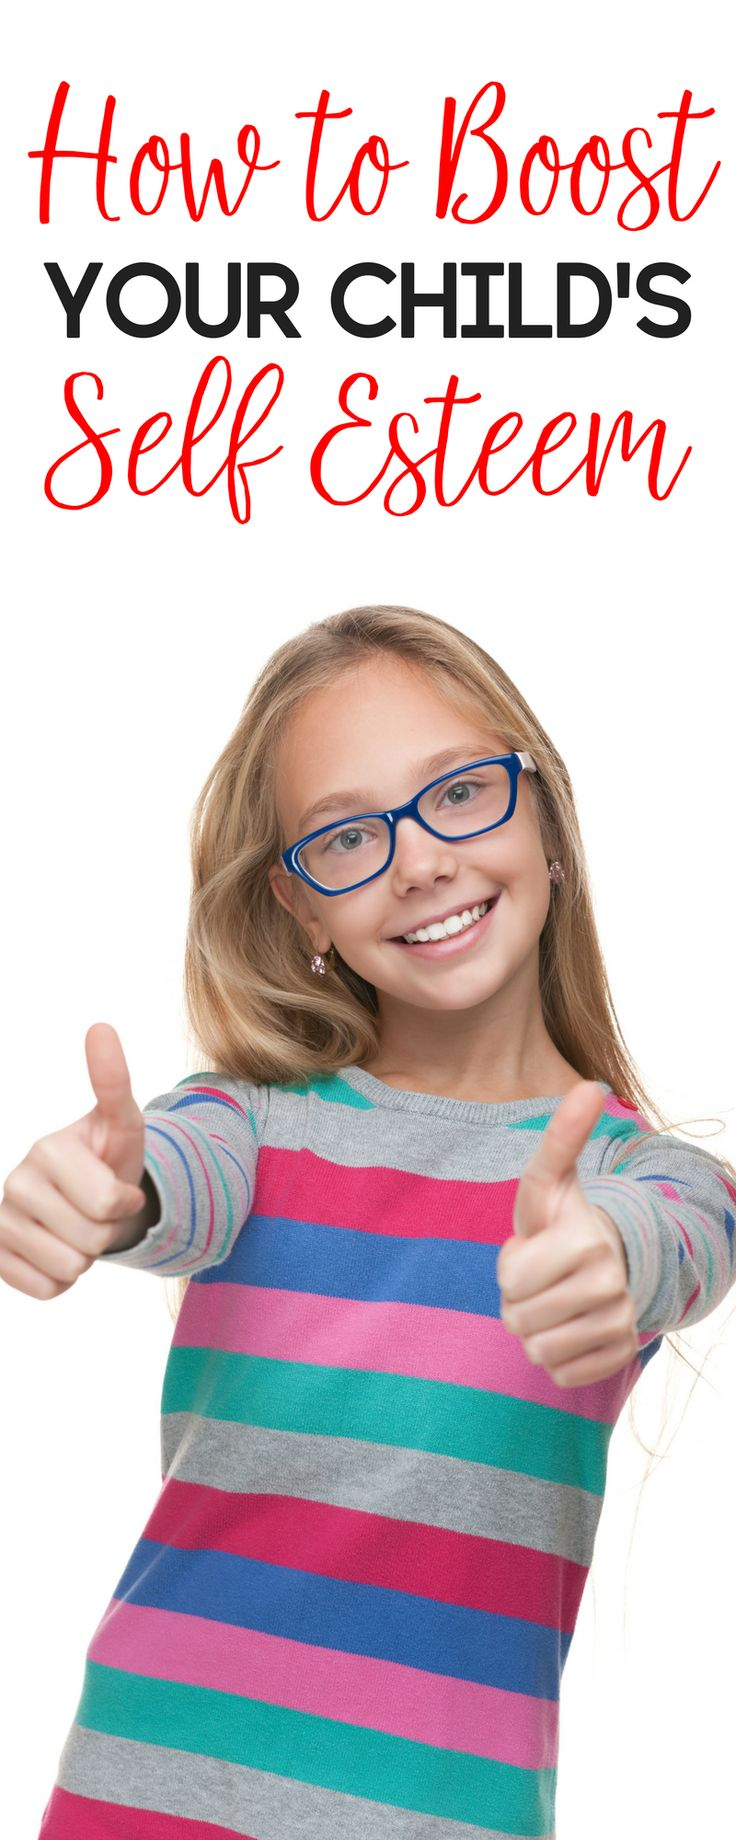 A child with self esteem is a confident child. Here's how to boost your child's self esteem. | parenting | positive parenting | self esteem in children | self esteem in kids | positive parenting techniques | raising confident kids | raising kids with confidence